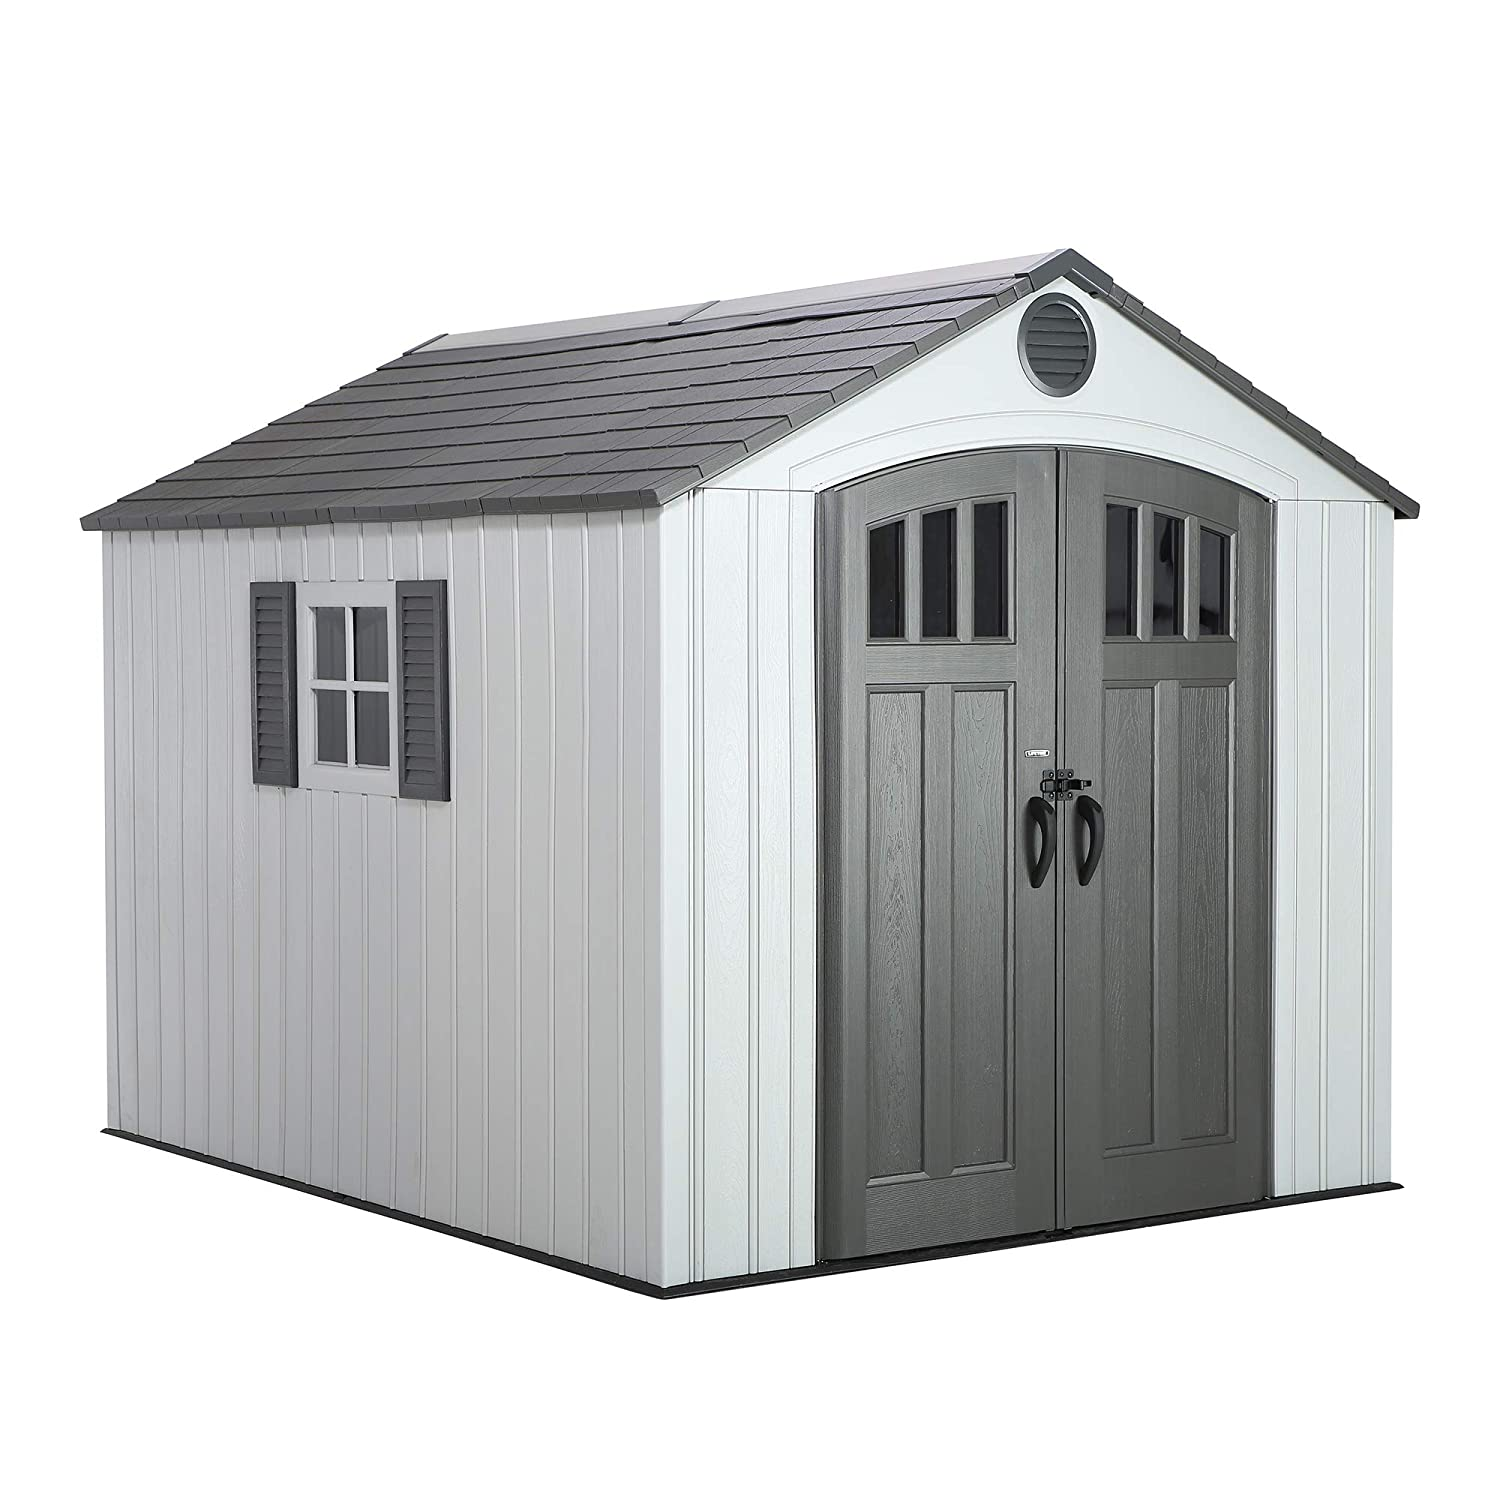 Lifetime 60202 8 x 10 Ft. Outdoor Storage Shed, Gray Lifetime Products